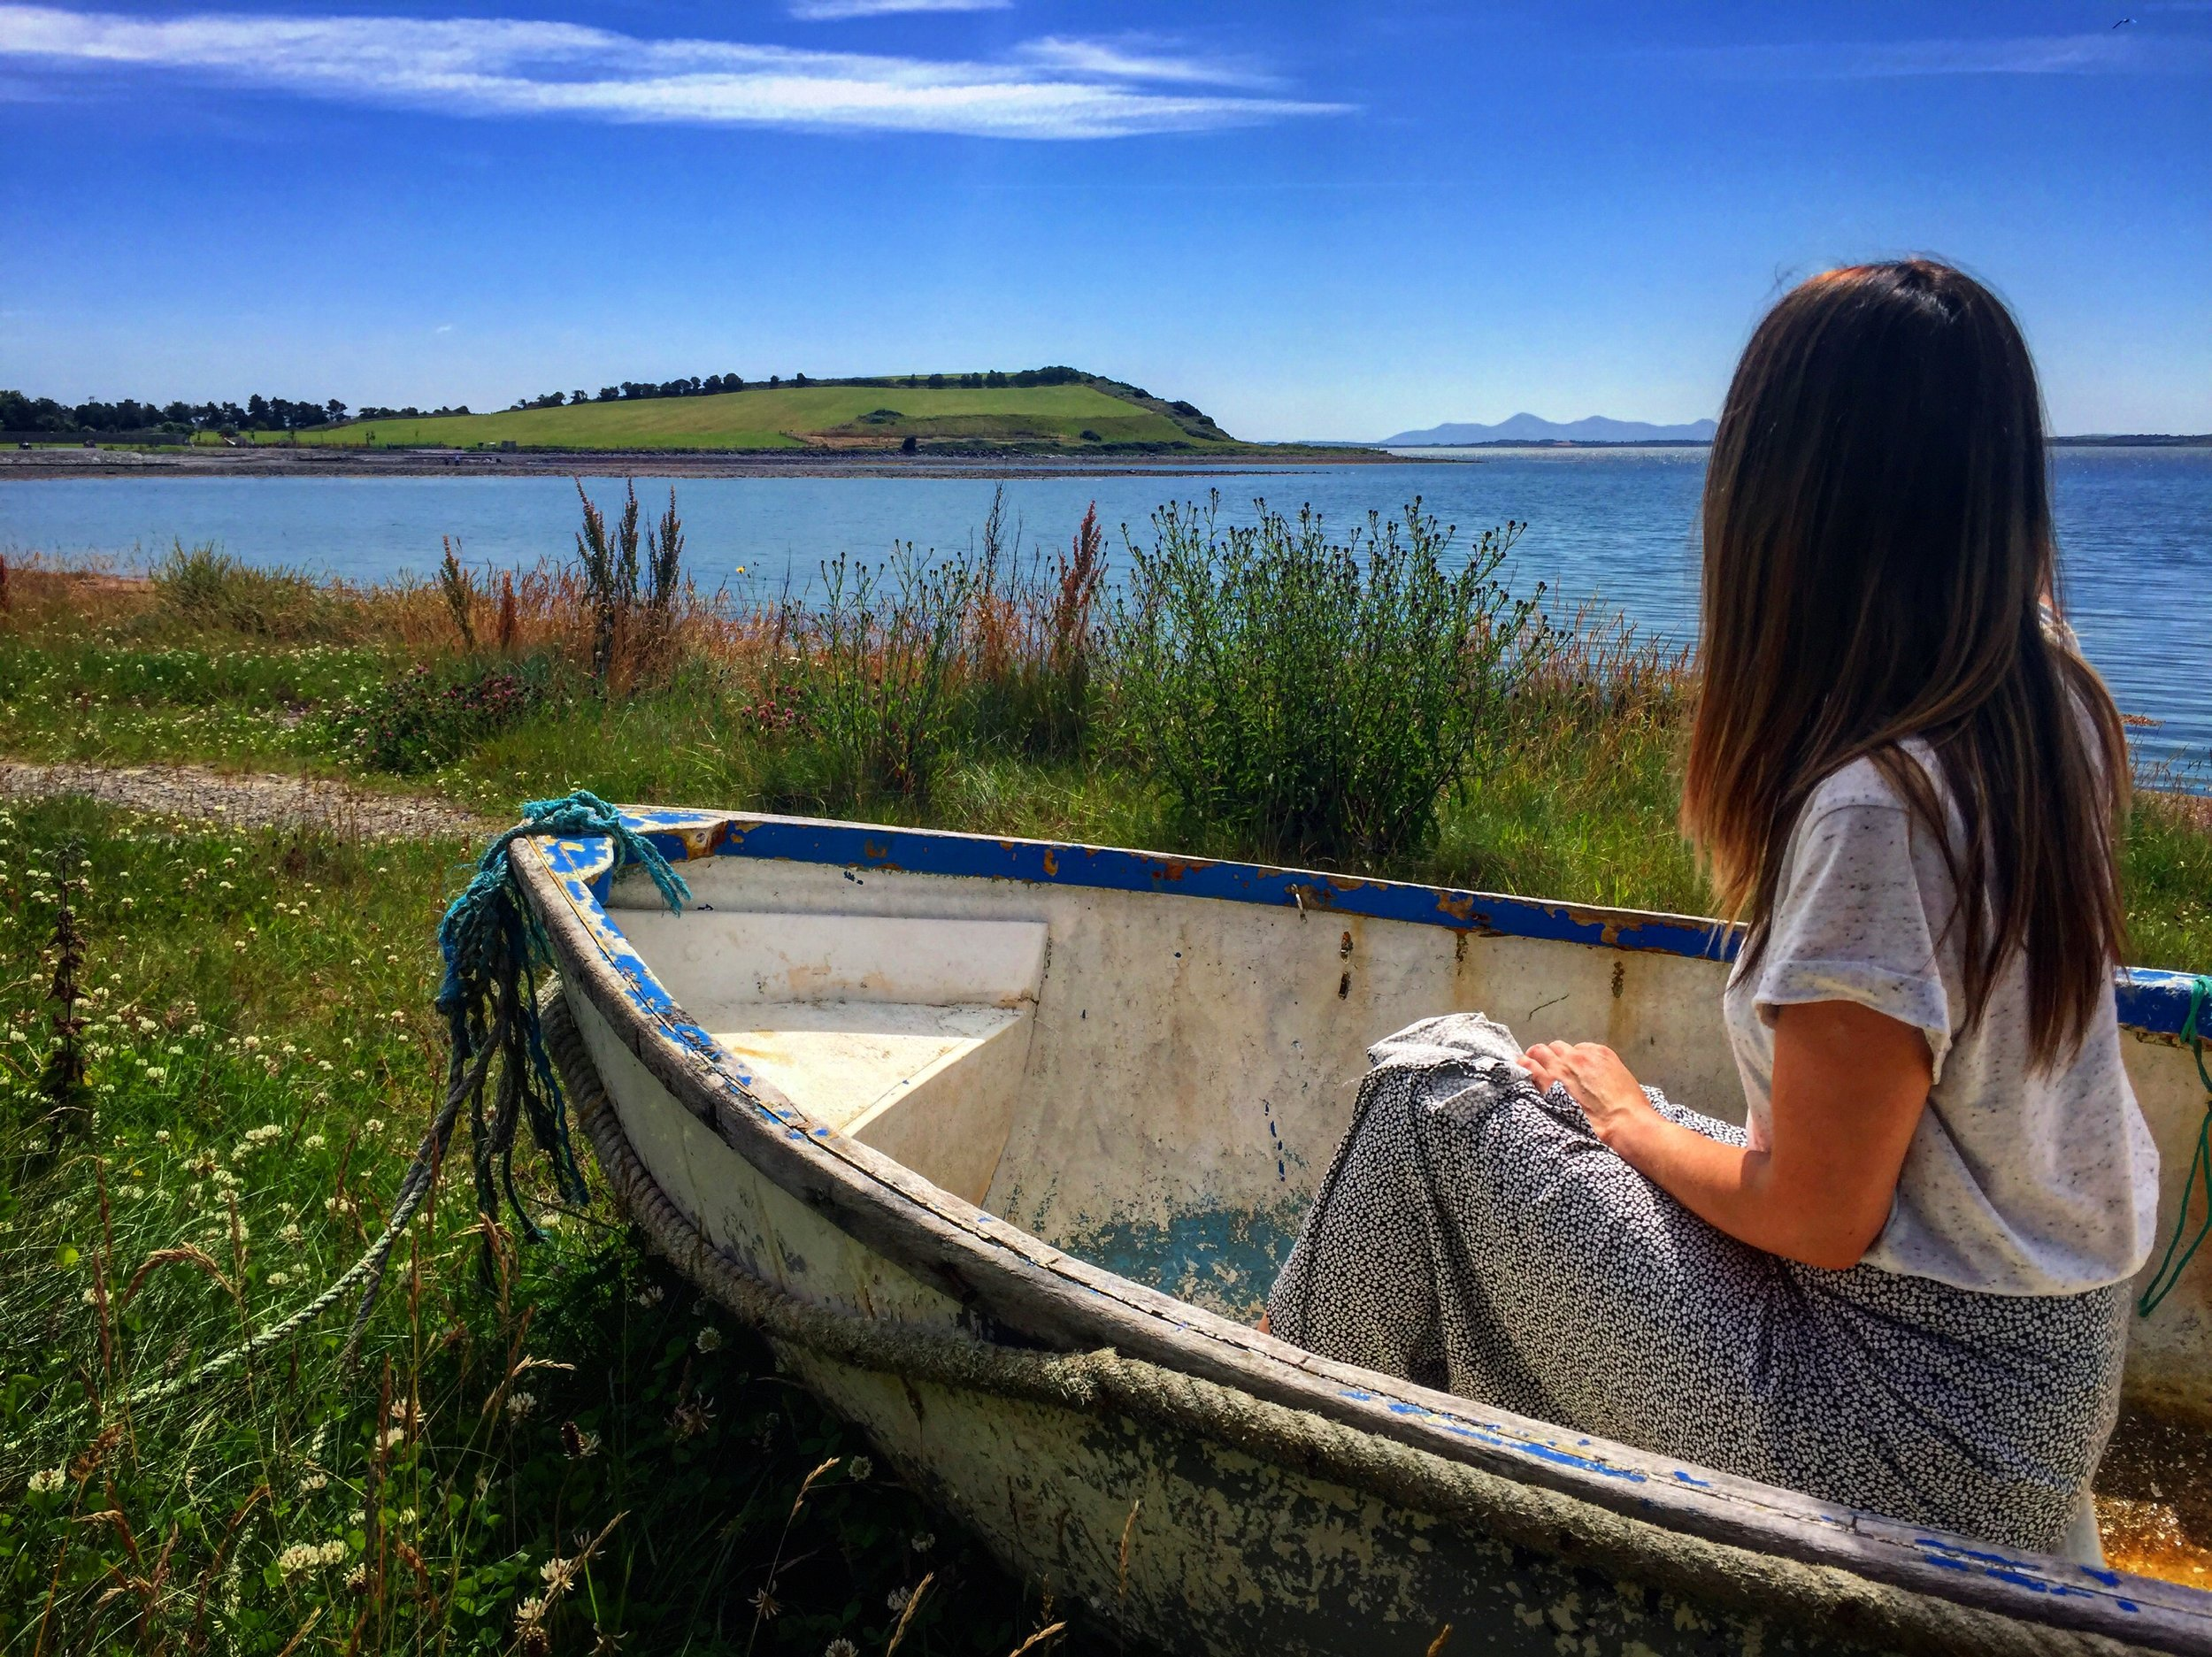 boat_girl_kircubbin_blue_sky_sea_strangford_lough_Ards_peninsula_ni_explorer_niexplorer_northern_ireland_blog.jpg